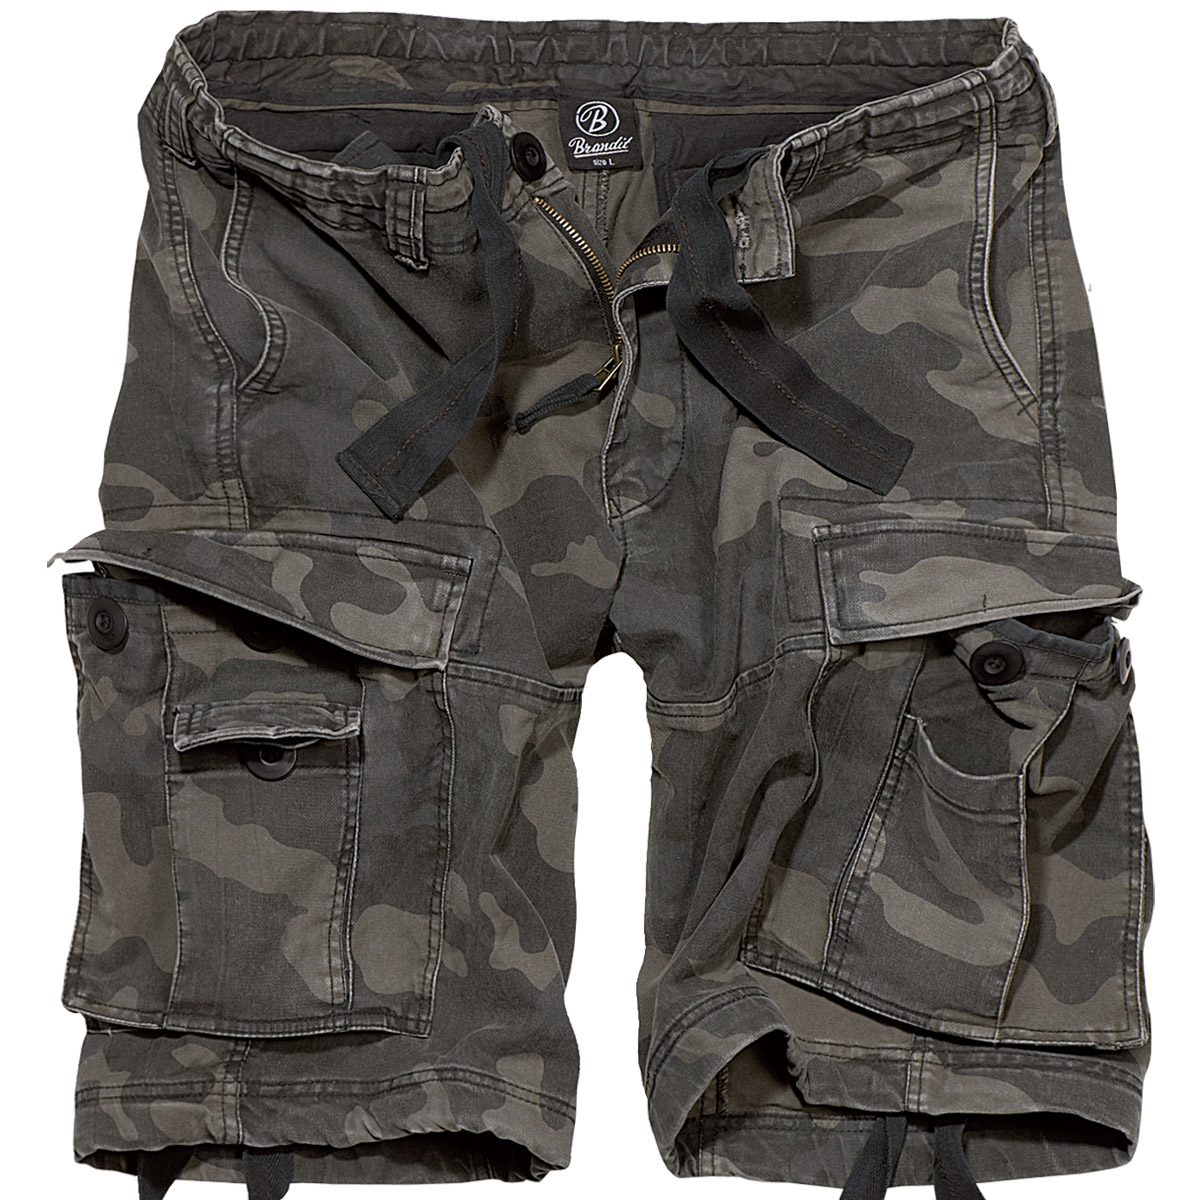 Sentinel Brandit Vintage Classic Combat Cargo Mens Army Military Shorts  Camping Dark Camo 3fdec9a6e51